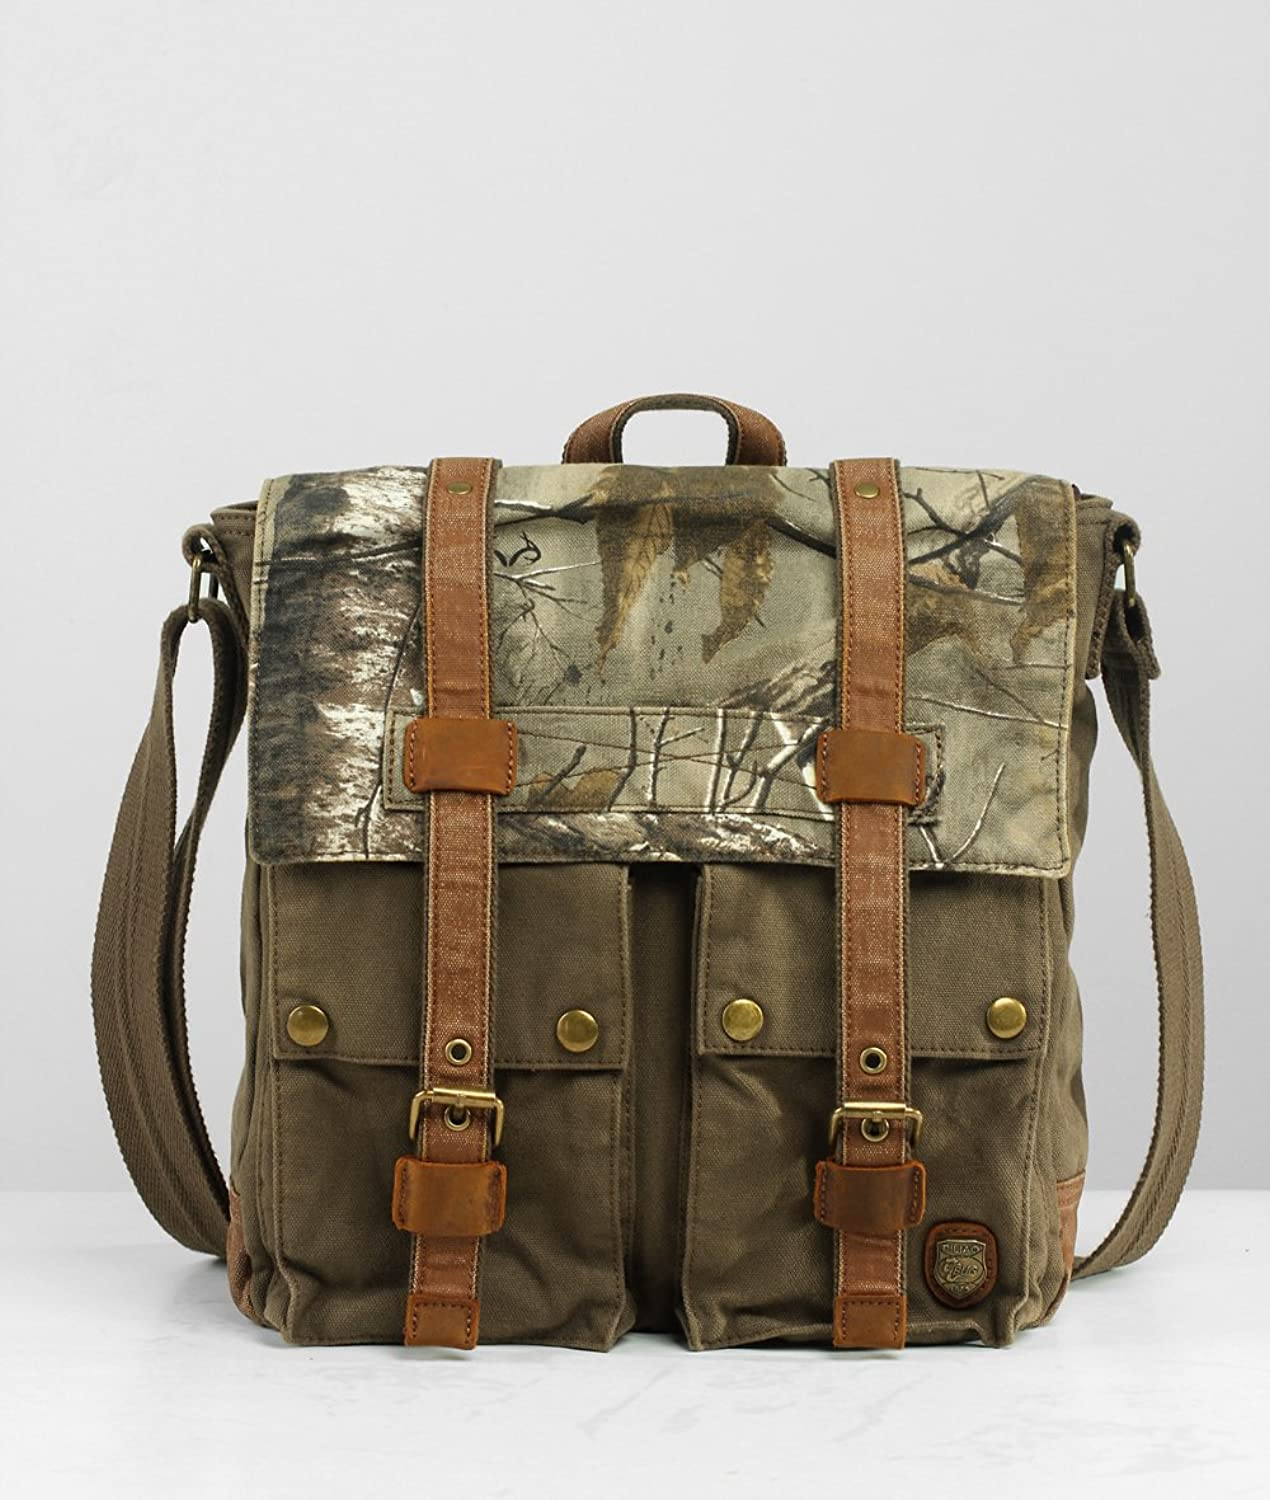 Canvas Bag Backpack Waterproof Backpack Notebook Stationery Backpack Lightweight Casual Backpack With Ladies Men's Leather Handle